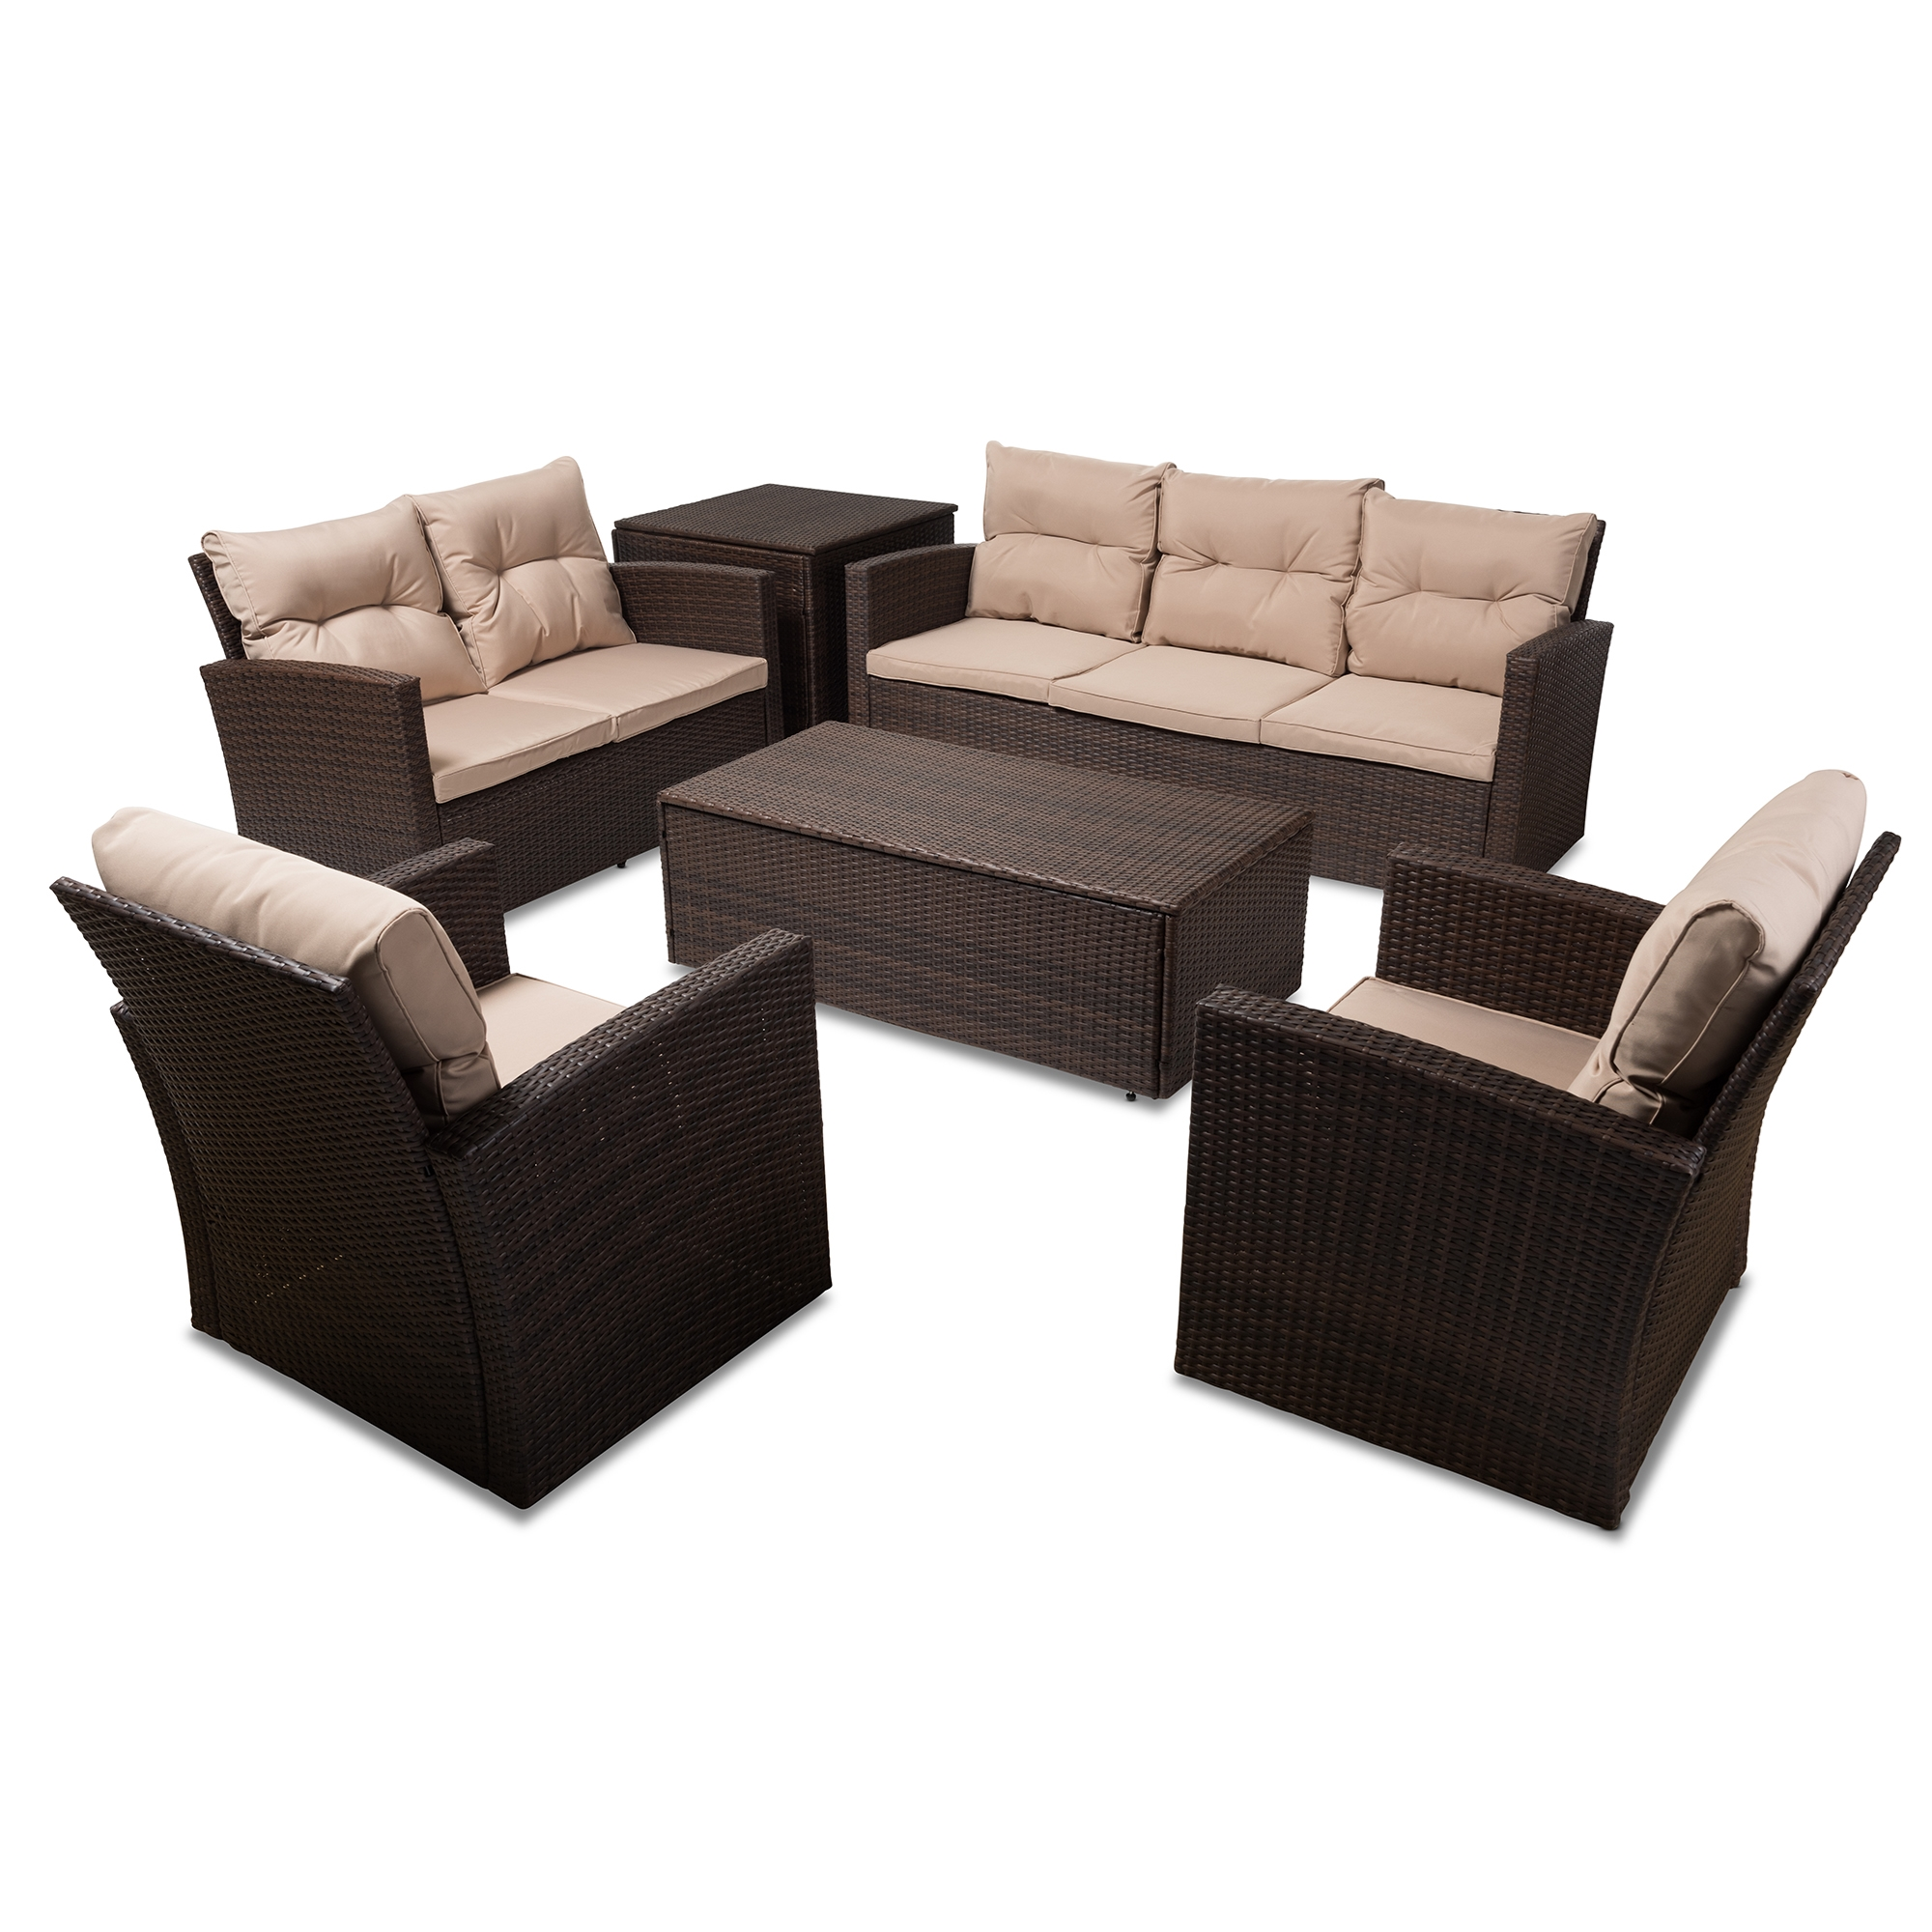 Baxton Studio Springville 6 Piece Brown Wicker Outdoor Seating Set Affordable  Modern Furniture In Chicago